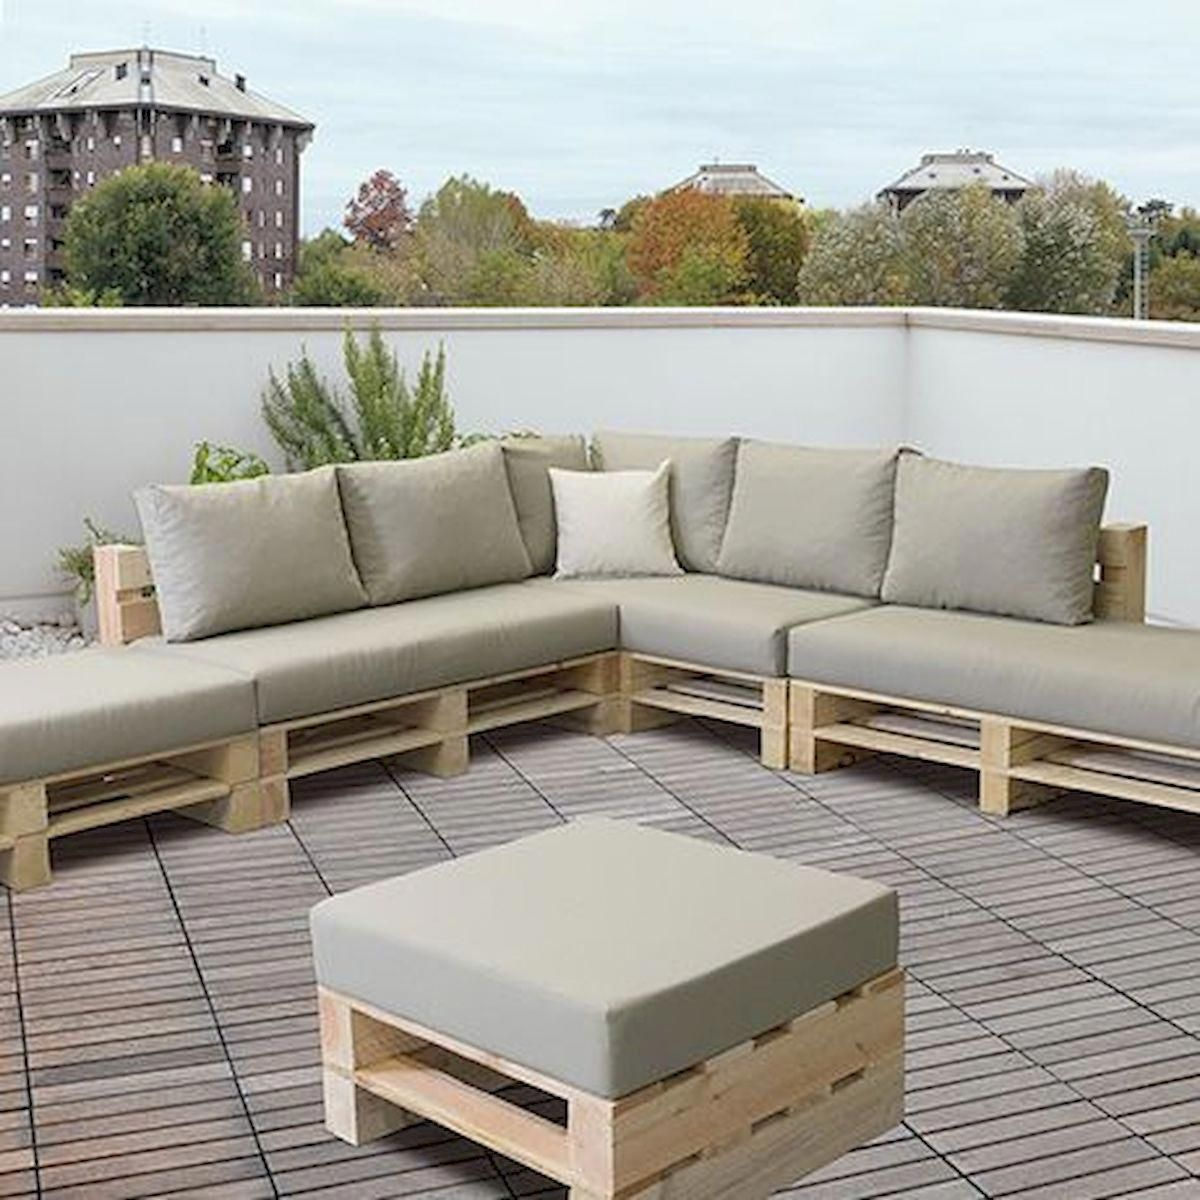 Shipping Furniture From Usa To Australia Mobili Da Giardino Pallet Mobili Da Giardino Giardino Pallet